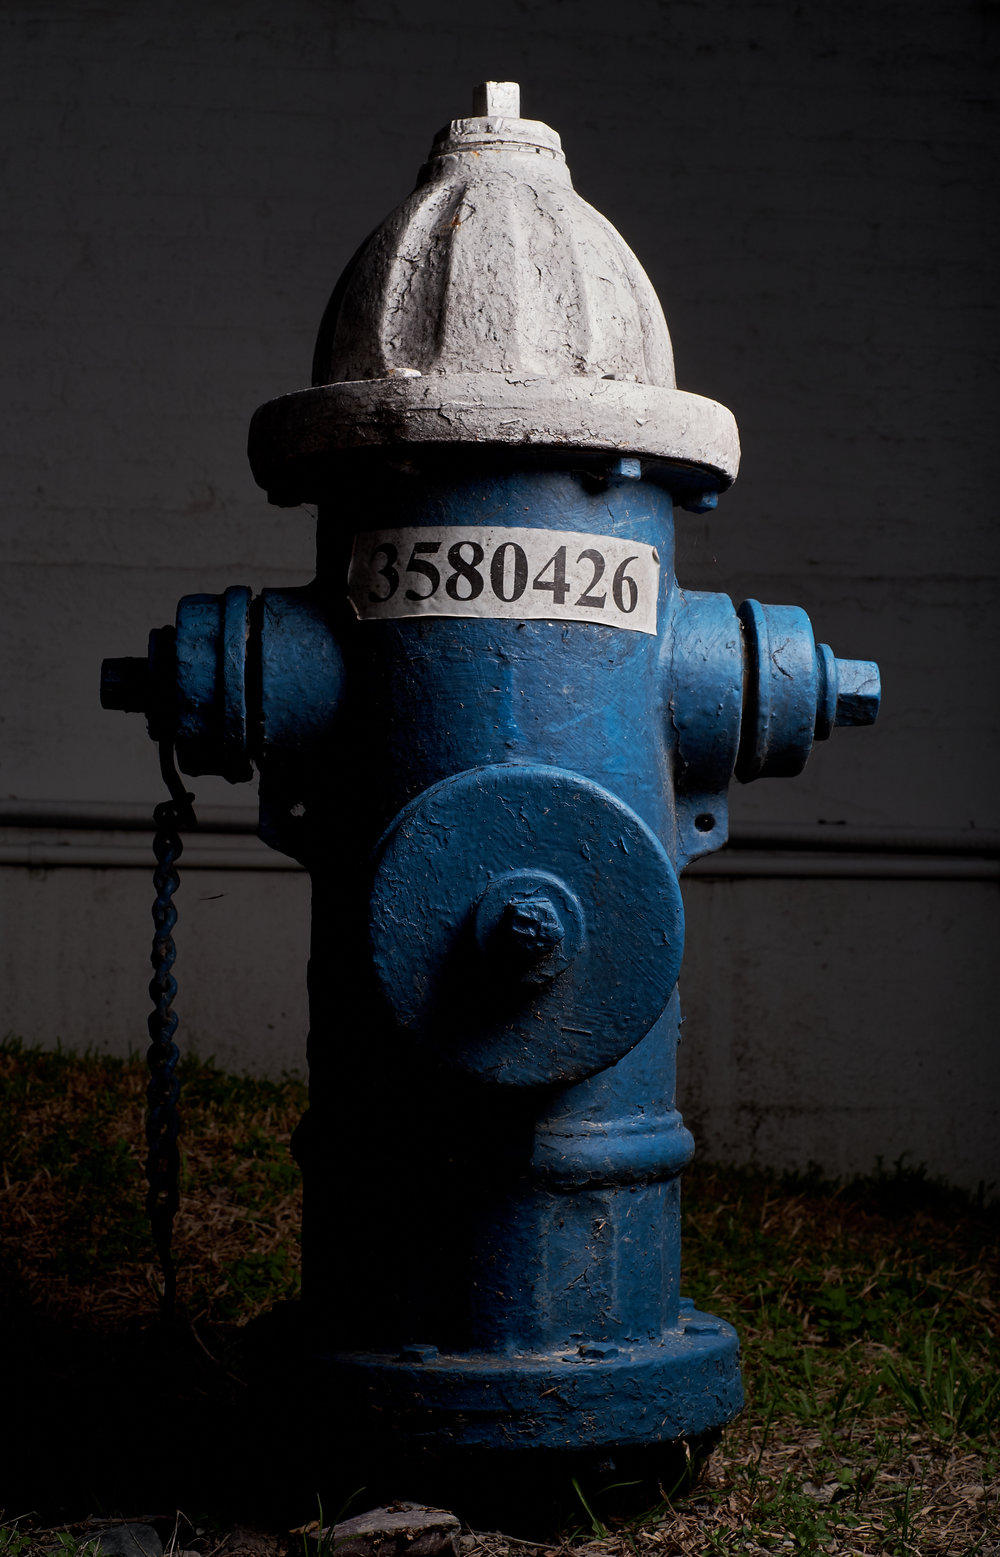 Hydrant Portrait #2